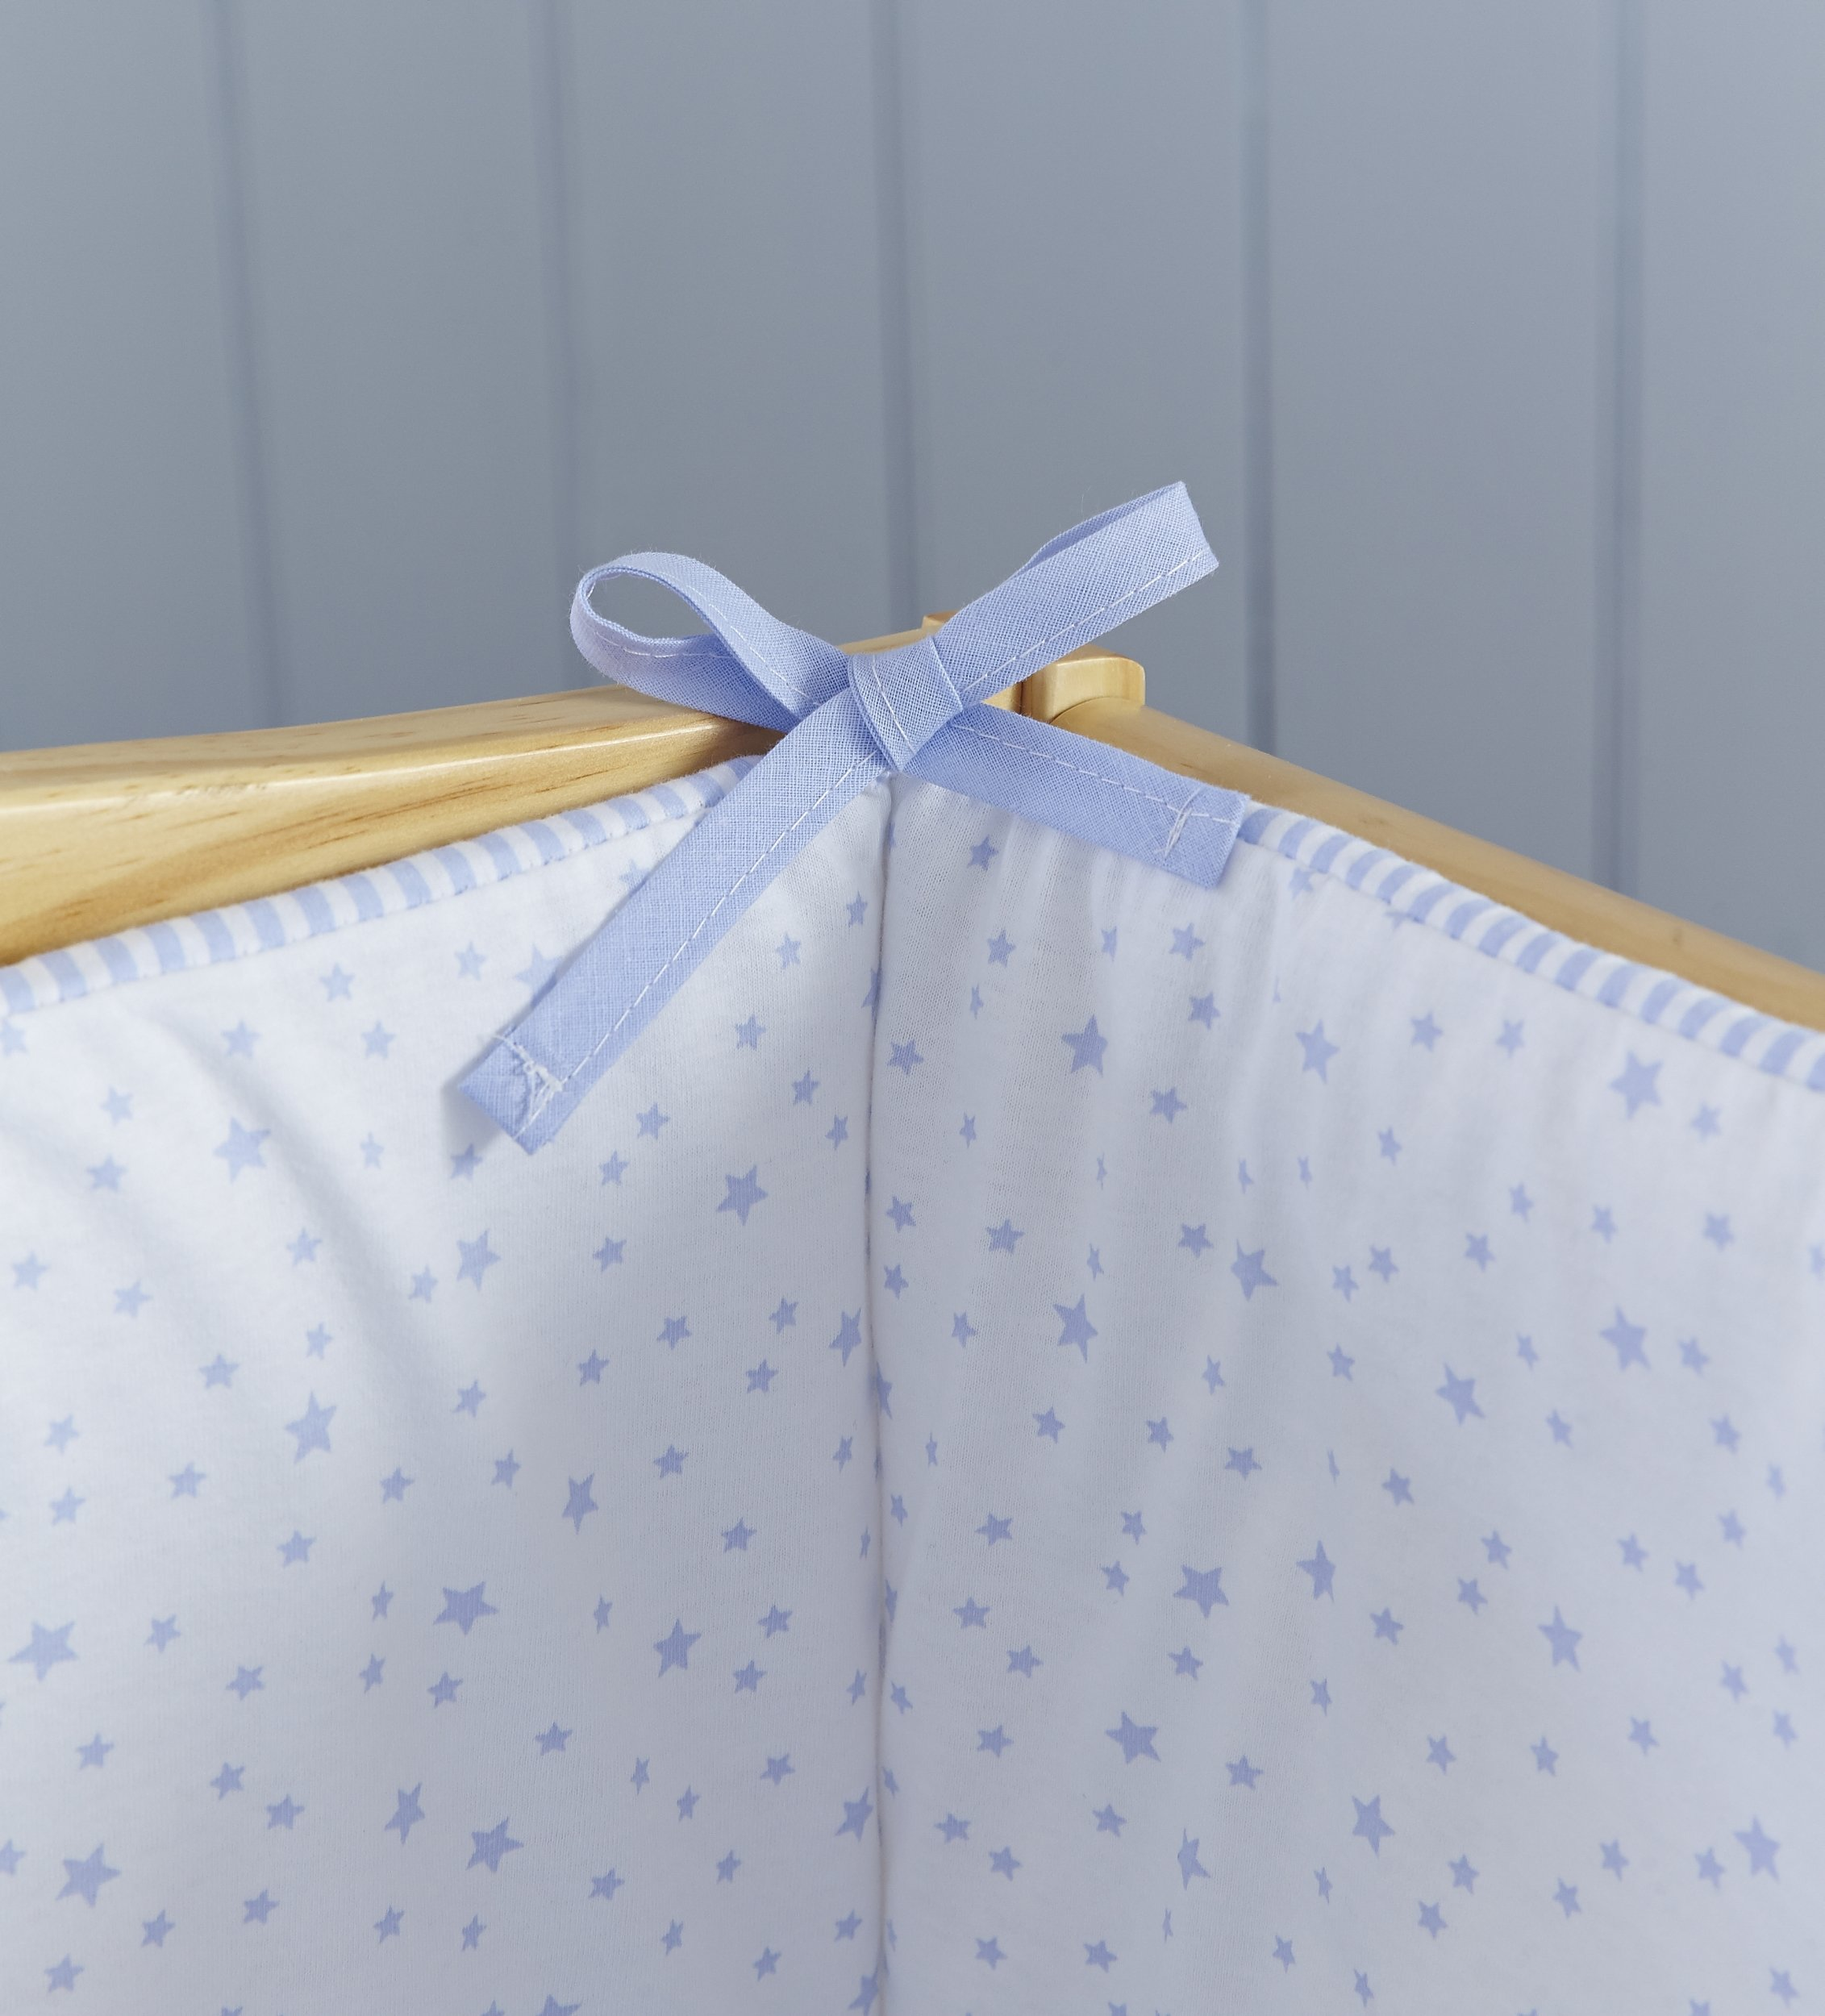 Clair de Lune Crib Set (Blue, Stars and Stripes, 2-Piece) Clair de Lune Featuring a subtle Stars and Stripes print this beautiful bedding set creates a relaxing sleeping area for your precious little one. Made from super soft 100% cotton. Comes complete with Stars and Stripes reversible padded bumper, and 2.5 tog coverlet. 3